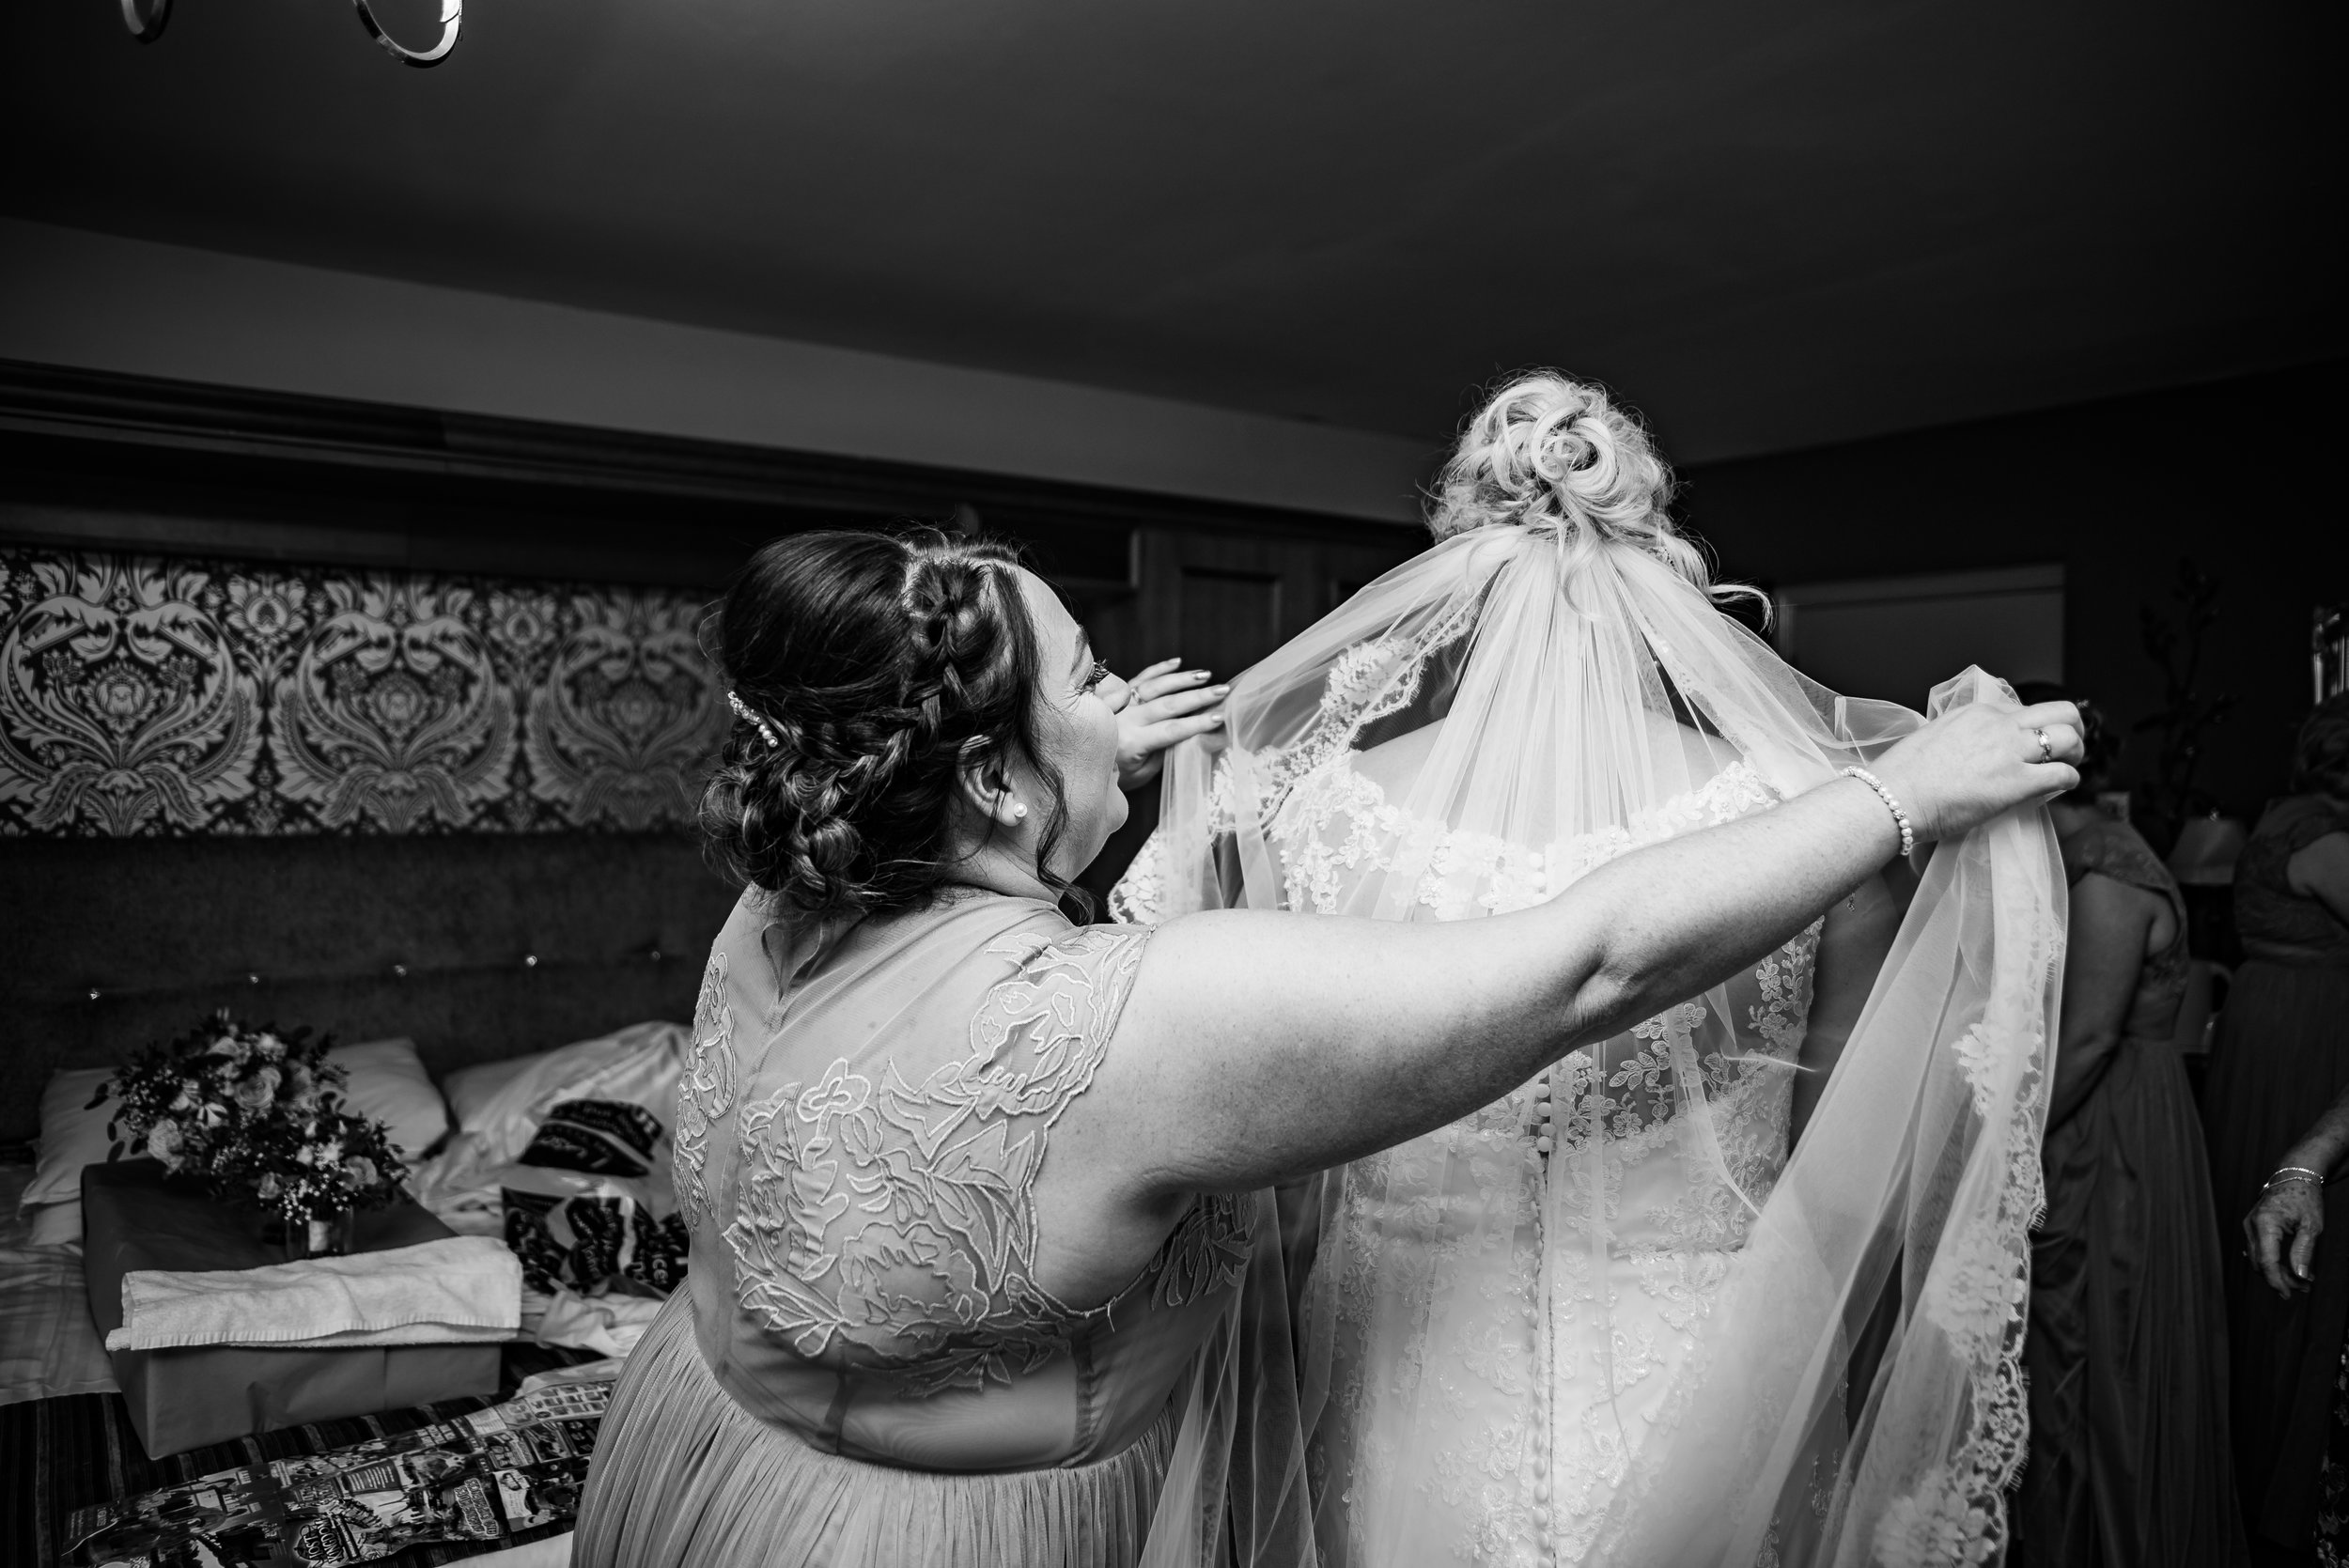 A beautiful moment the maid of honour attaches the veil. This is a perfect moment as the veil belongs to the maid of honour and she wore it for her wedding, it's the brides something borrowed. Wedding photography is about capturing all these moments because they are more than capturing memories, its about telling your story.